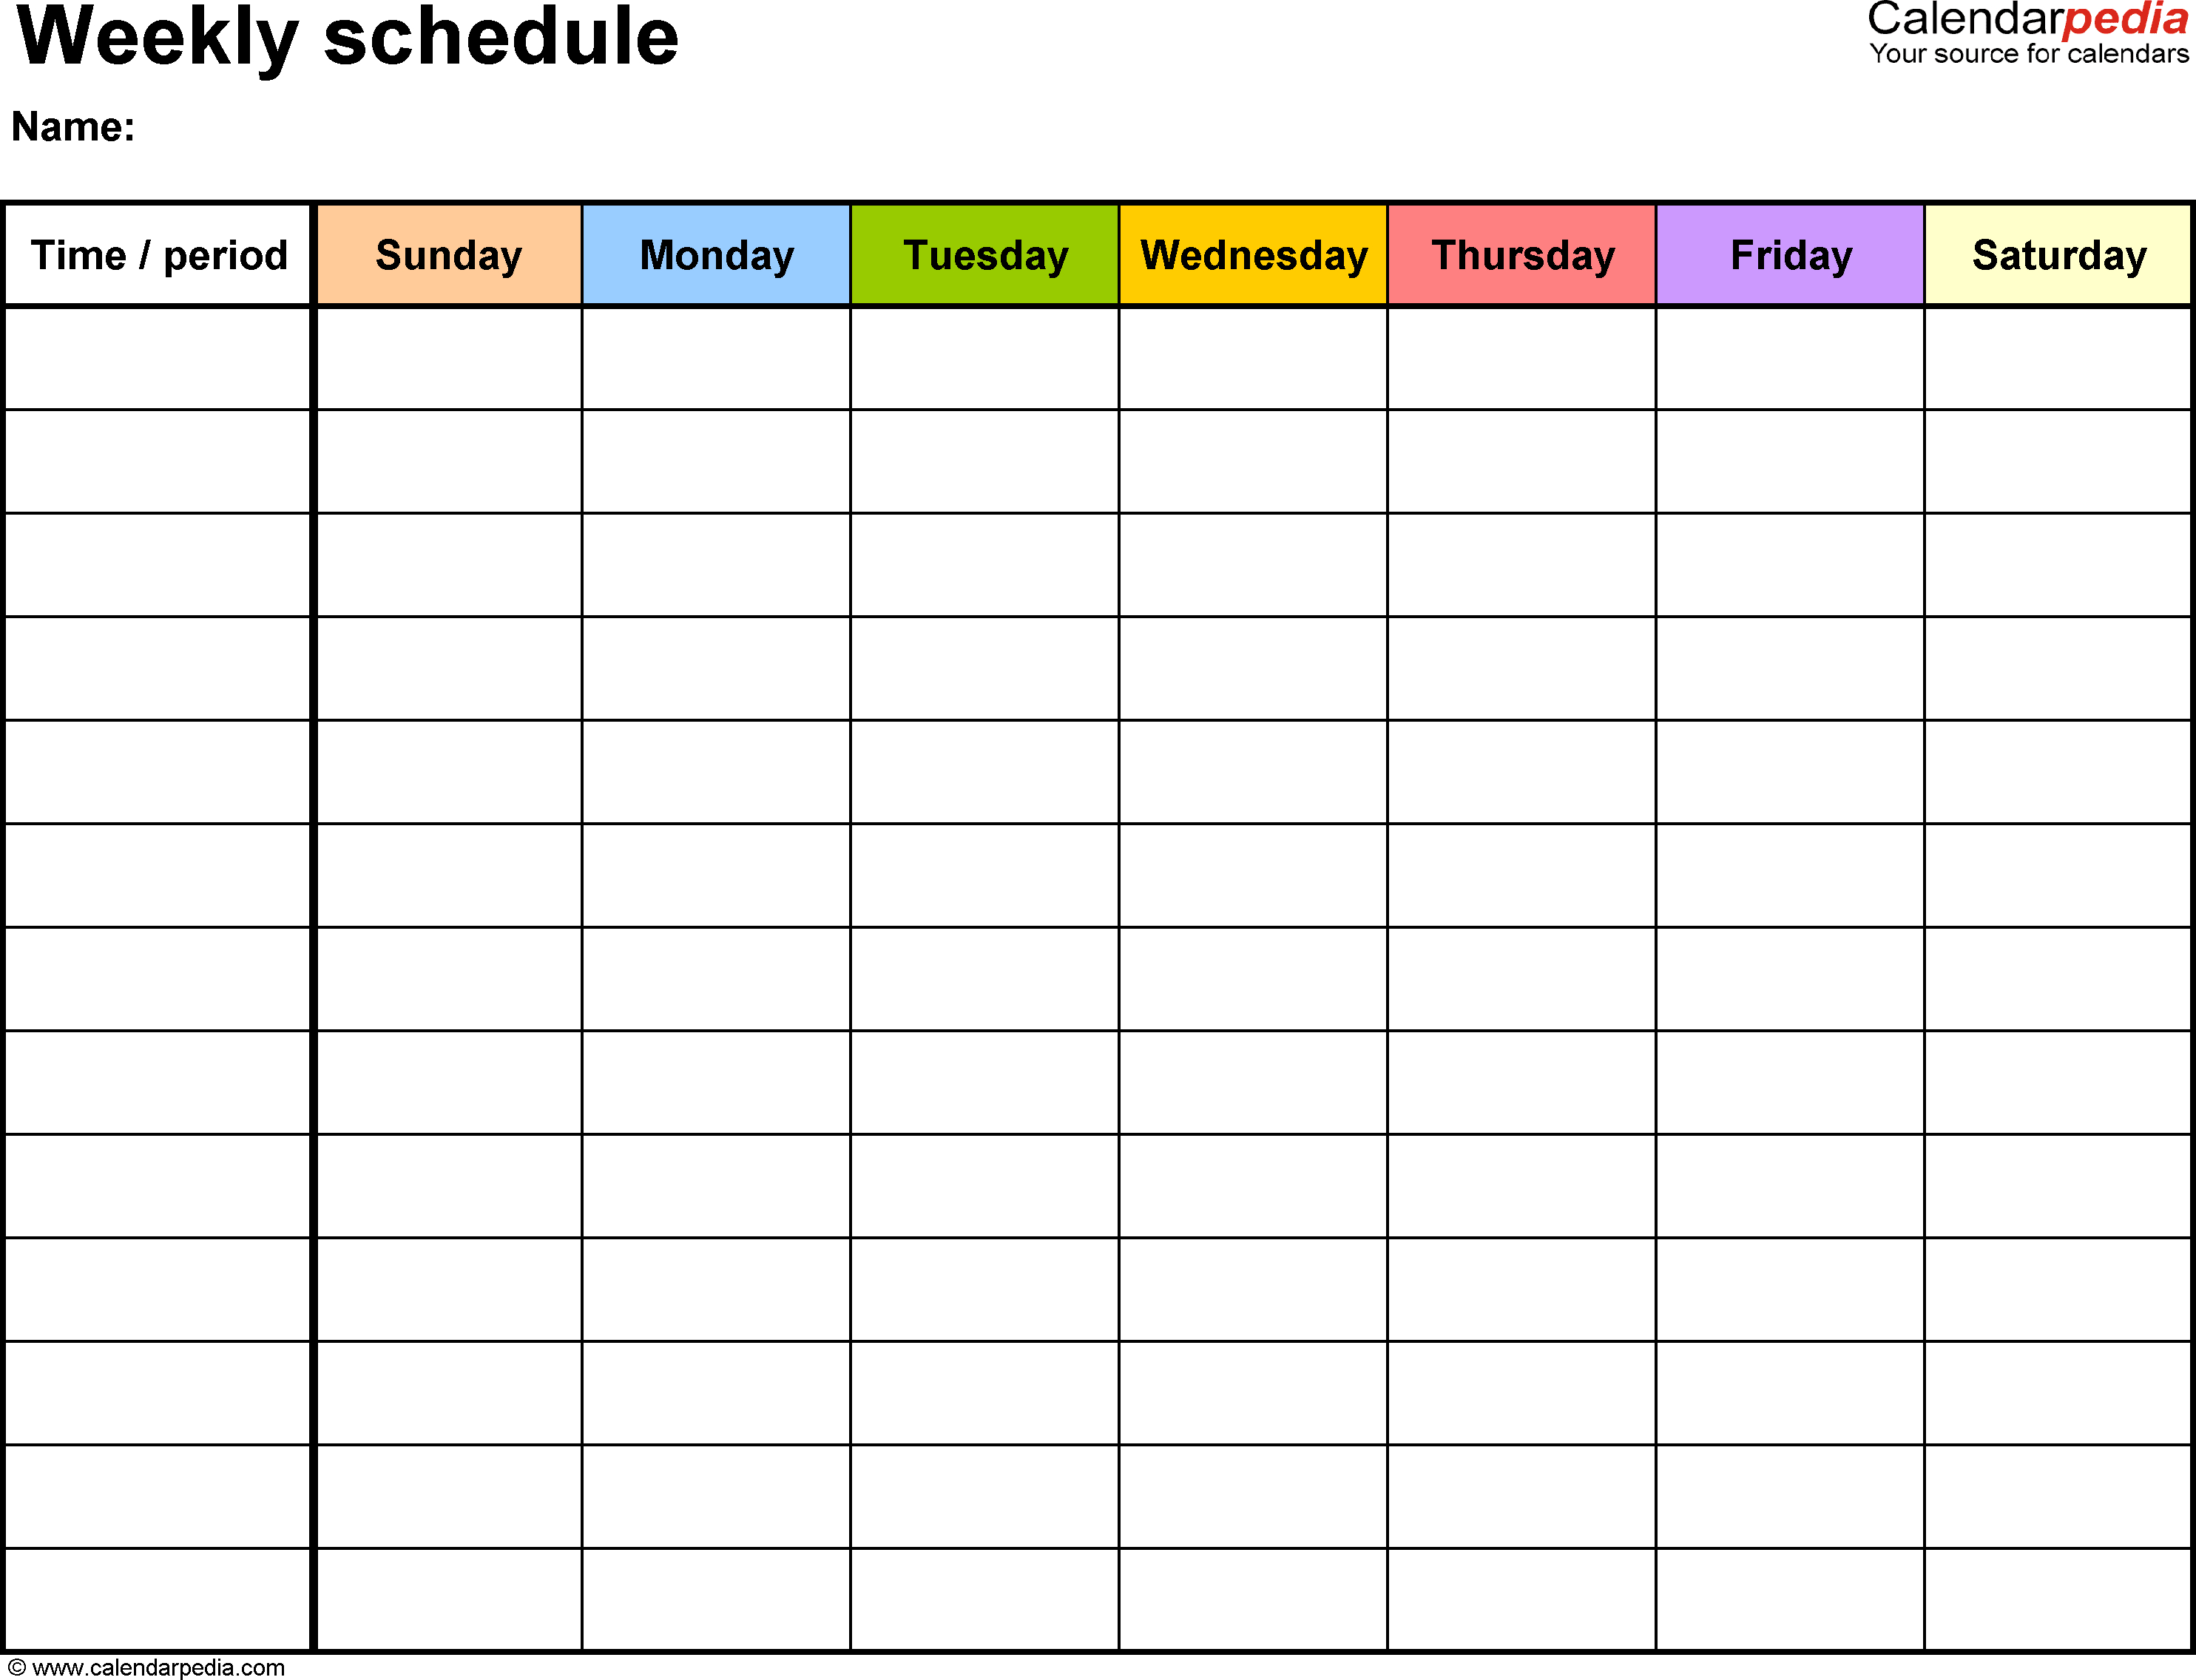 Free Weekly Schedule Templates For Excel - 18 Templates Monday Through Friday Schedule Template Free